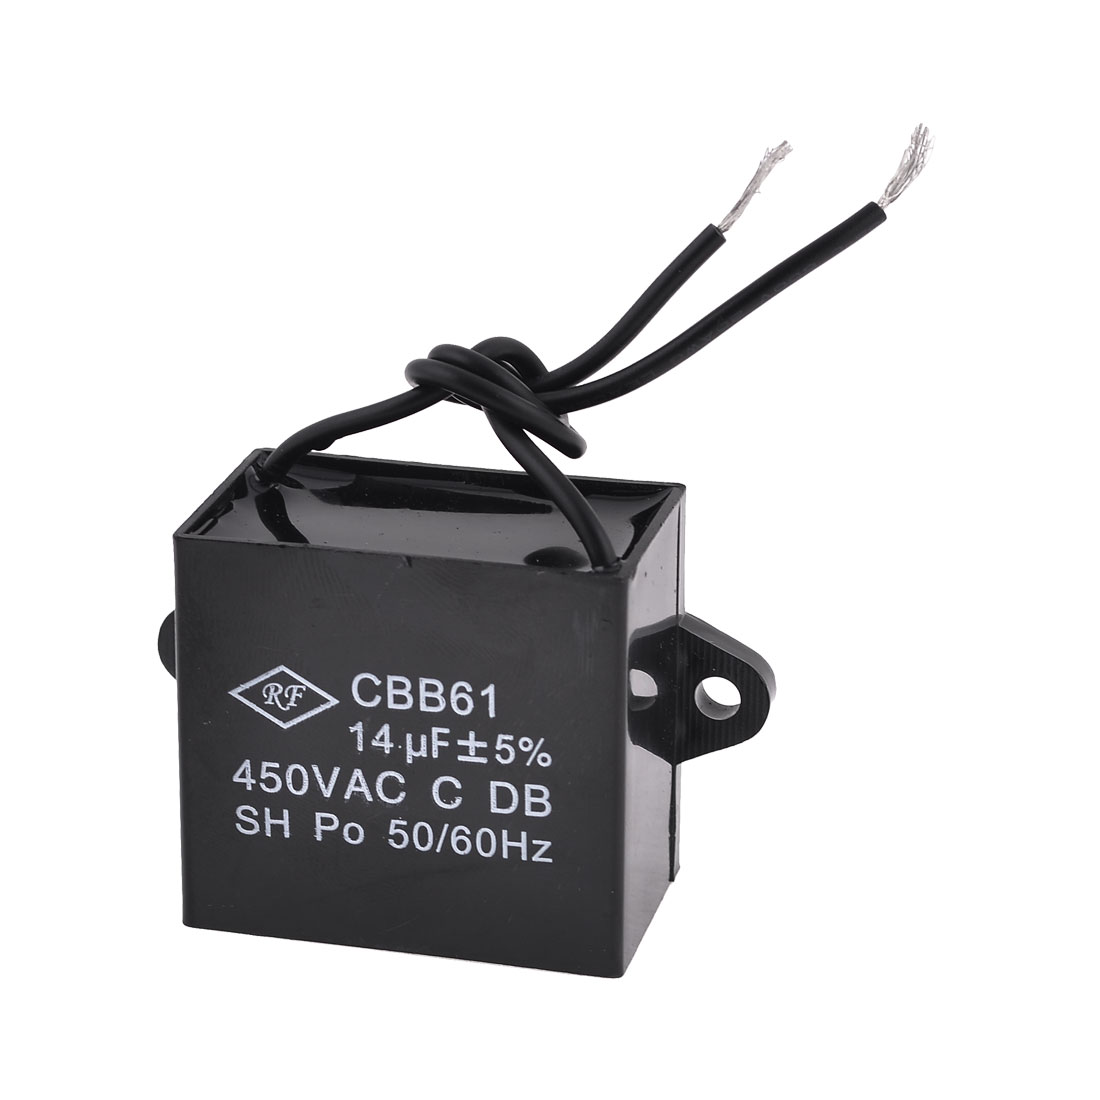 CBB61 Metalized Polypropylene Film Motor Run Capacitor AC 450V 14uF